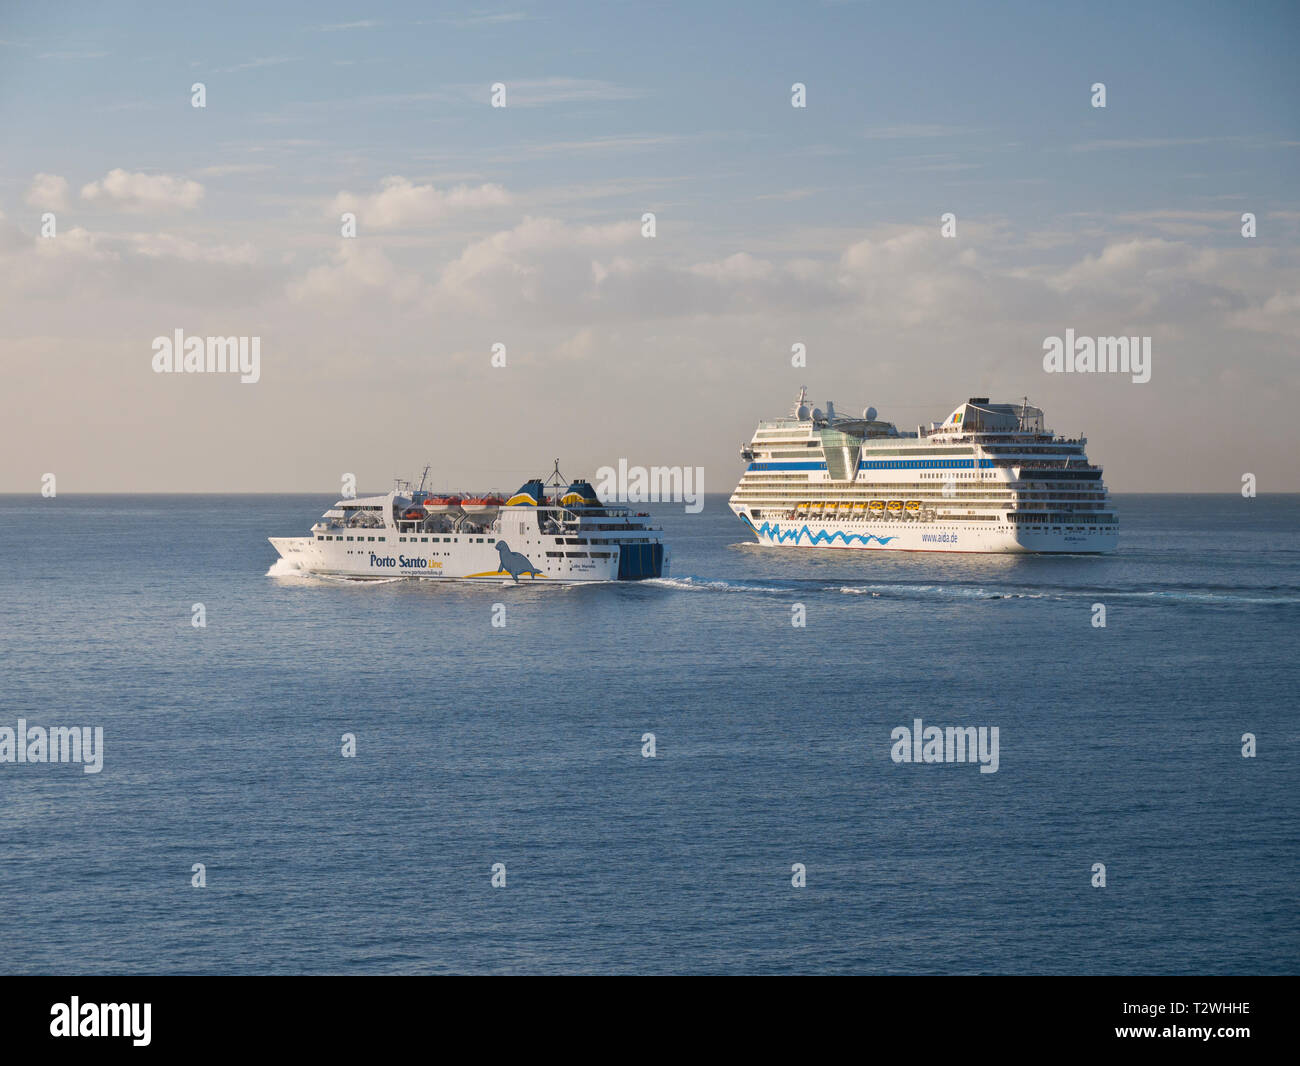 The Porto Santo Island Ferry and AIDA Stella cruise ship leaving Funchal port in Madeira after sunrise on a clear morning. - Stock Image